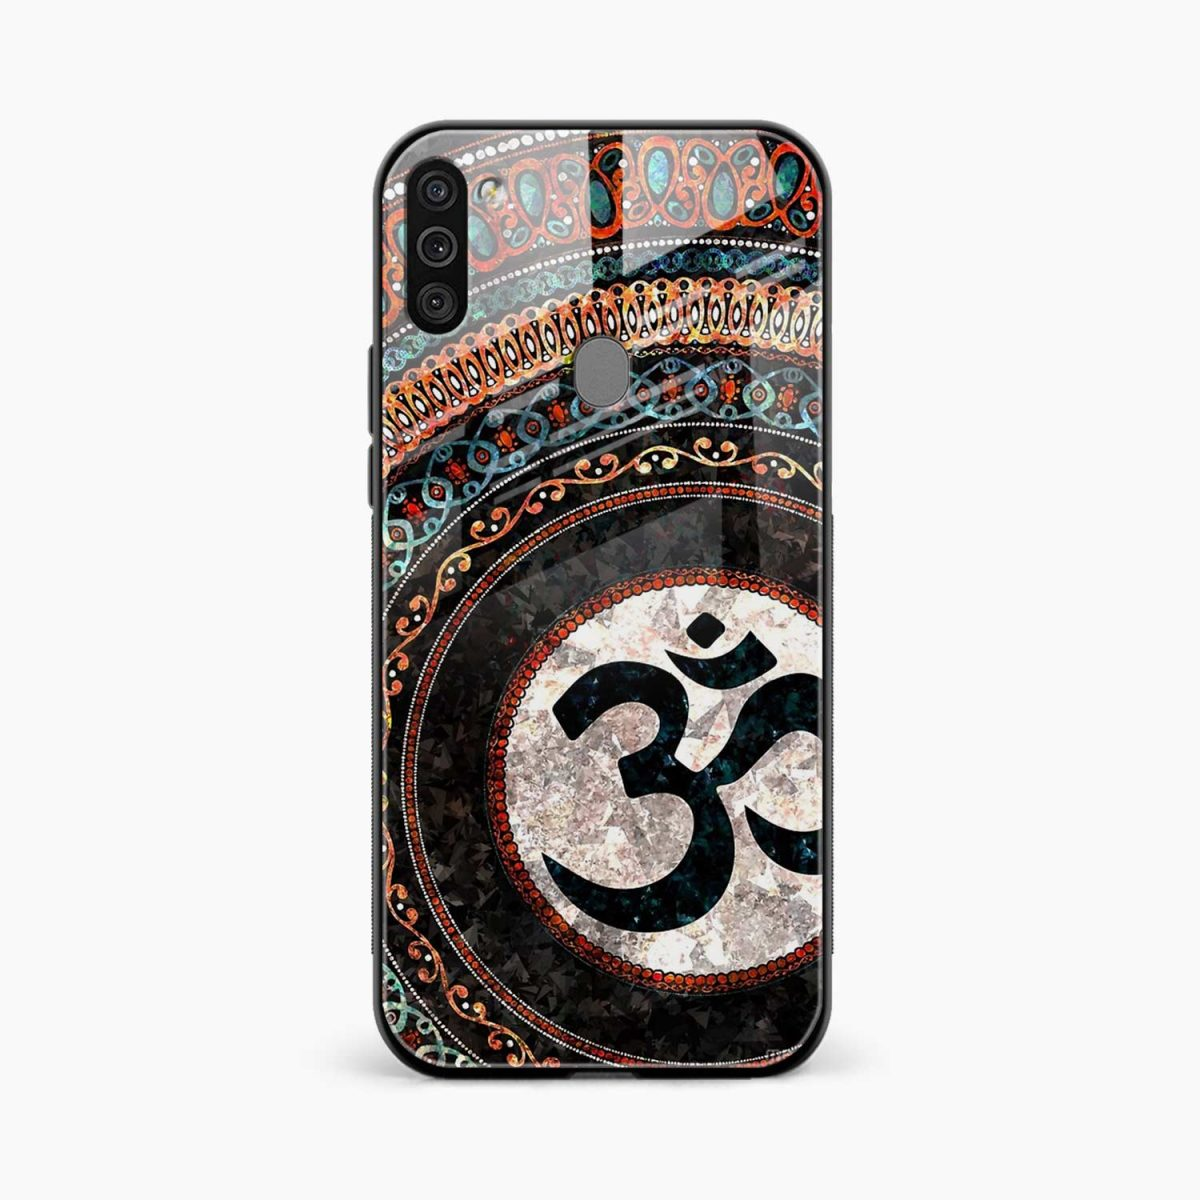 om glass front view samsung galaxy m11 back cover